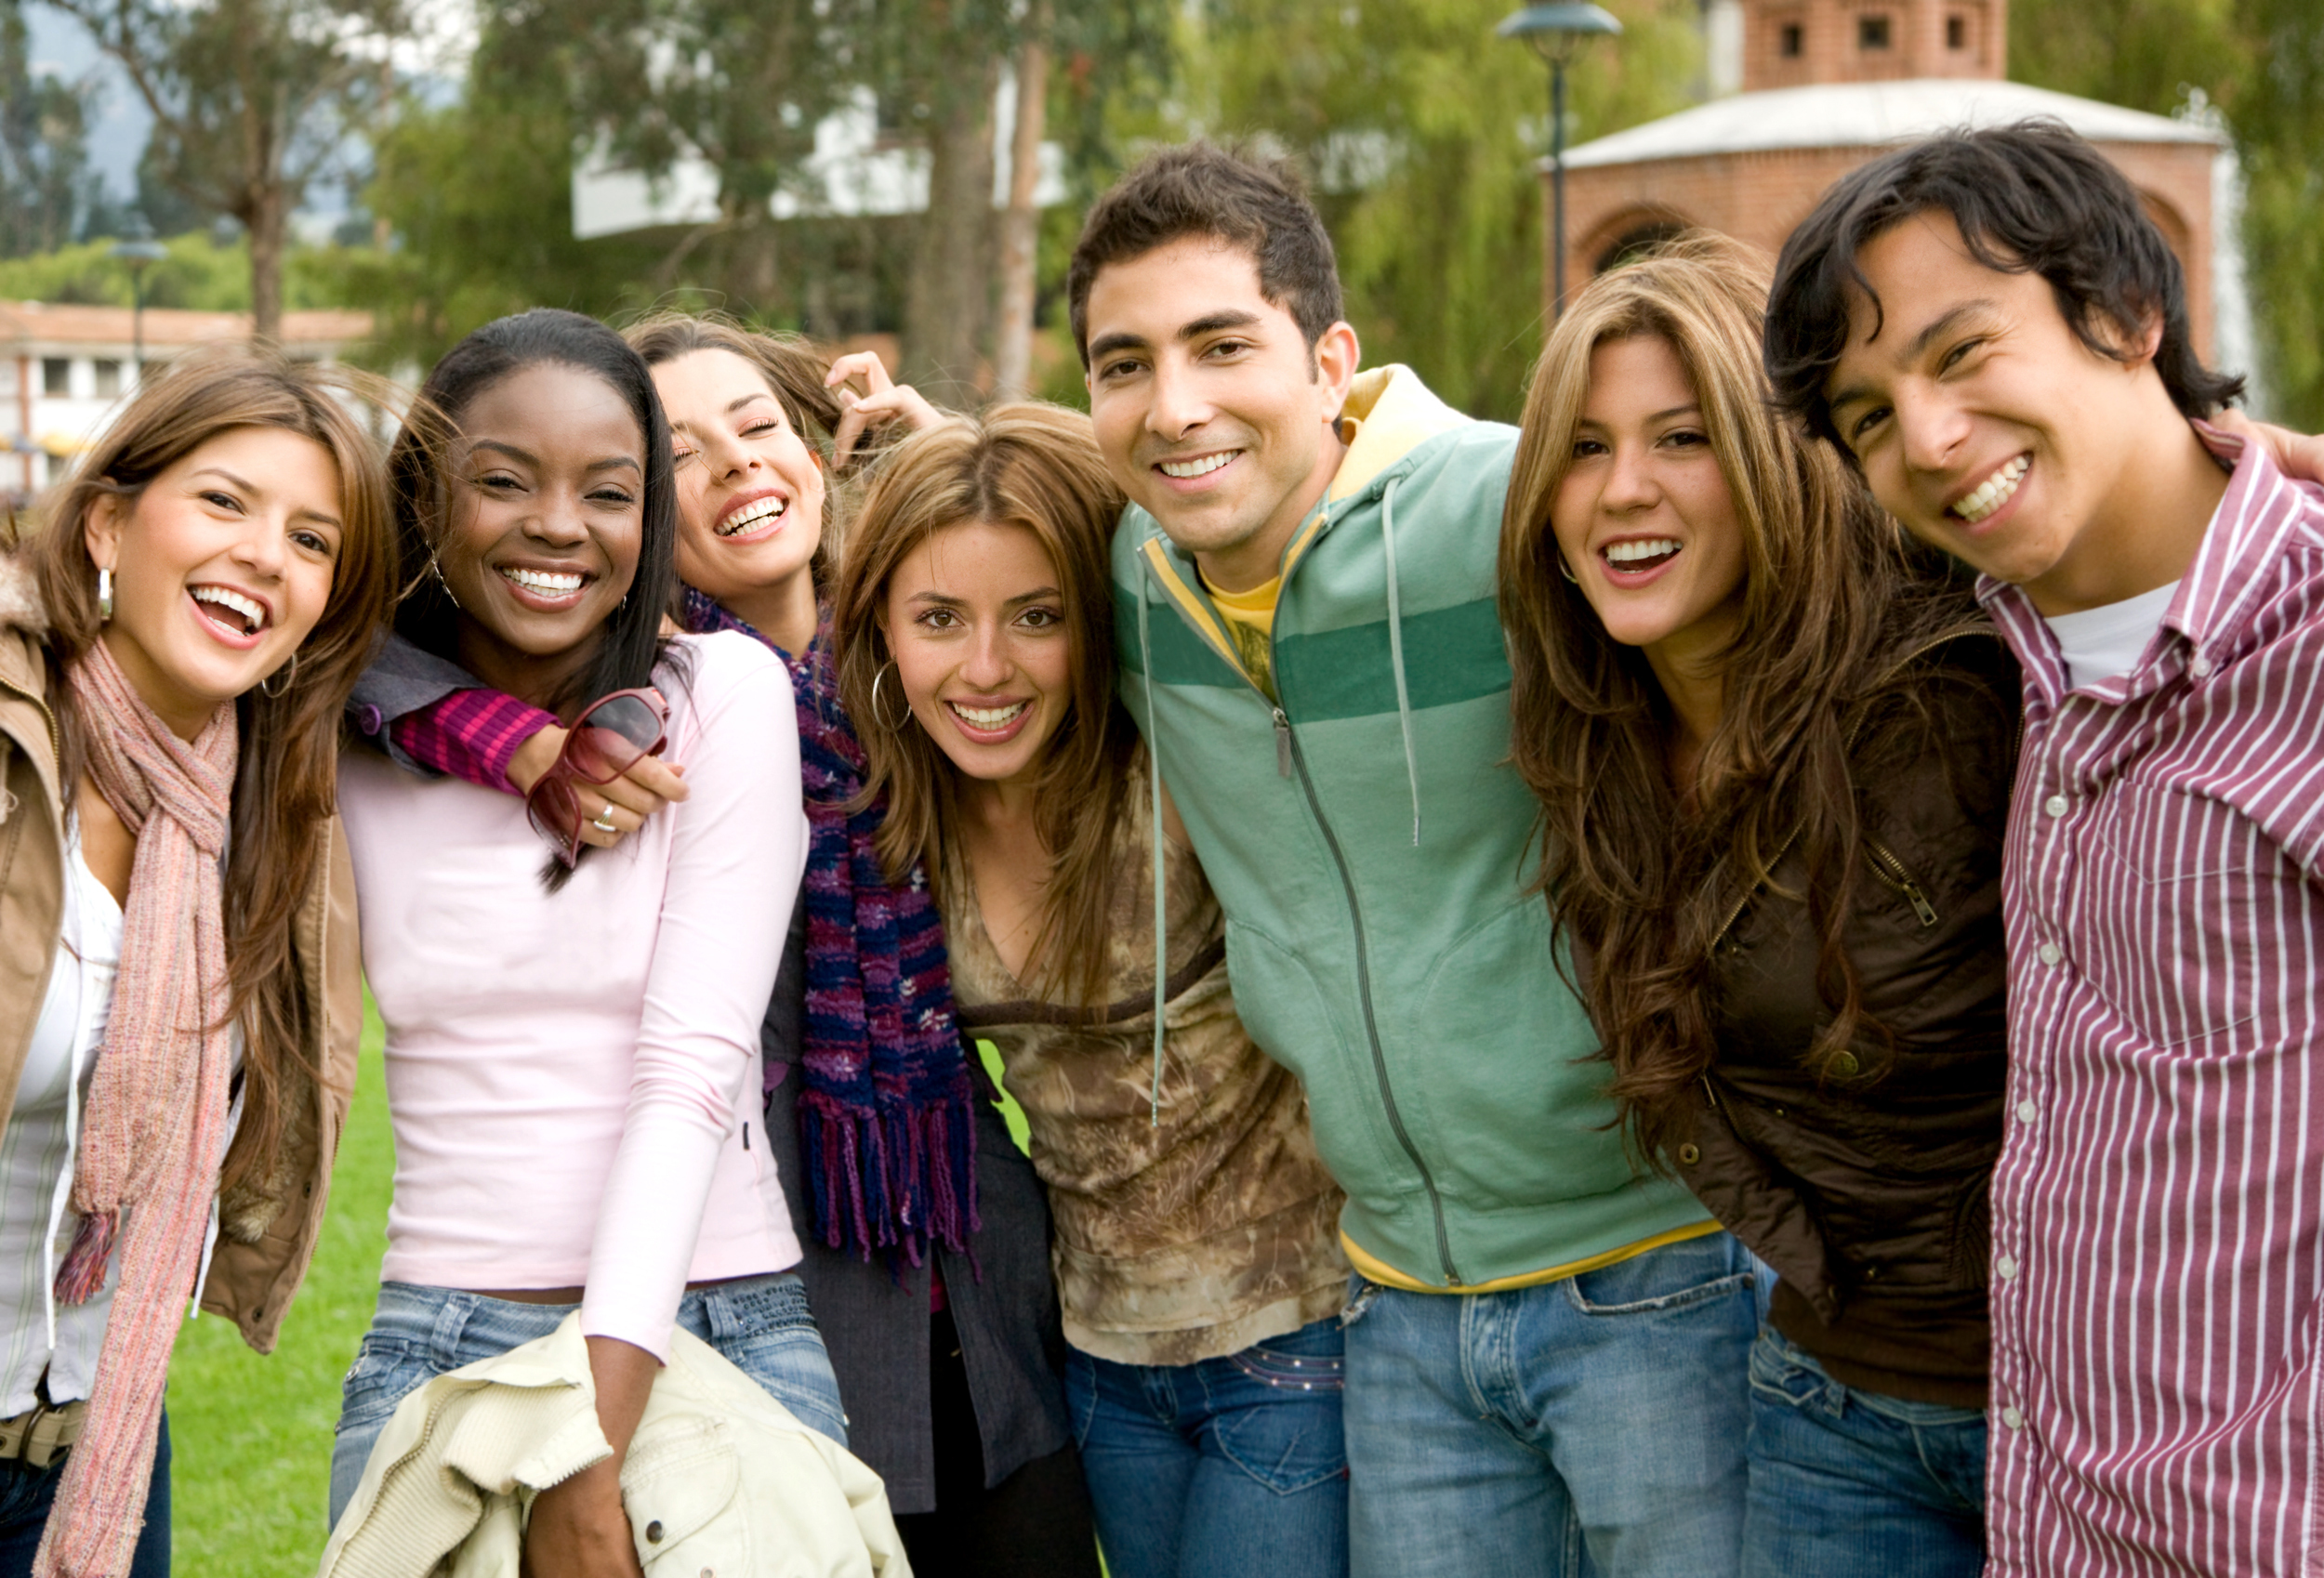 Group of college aged students gathered together with arms around one another